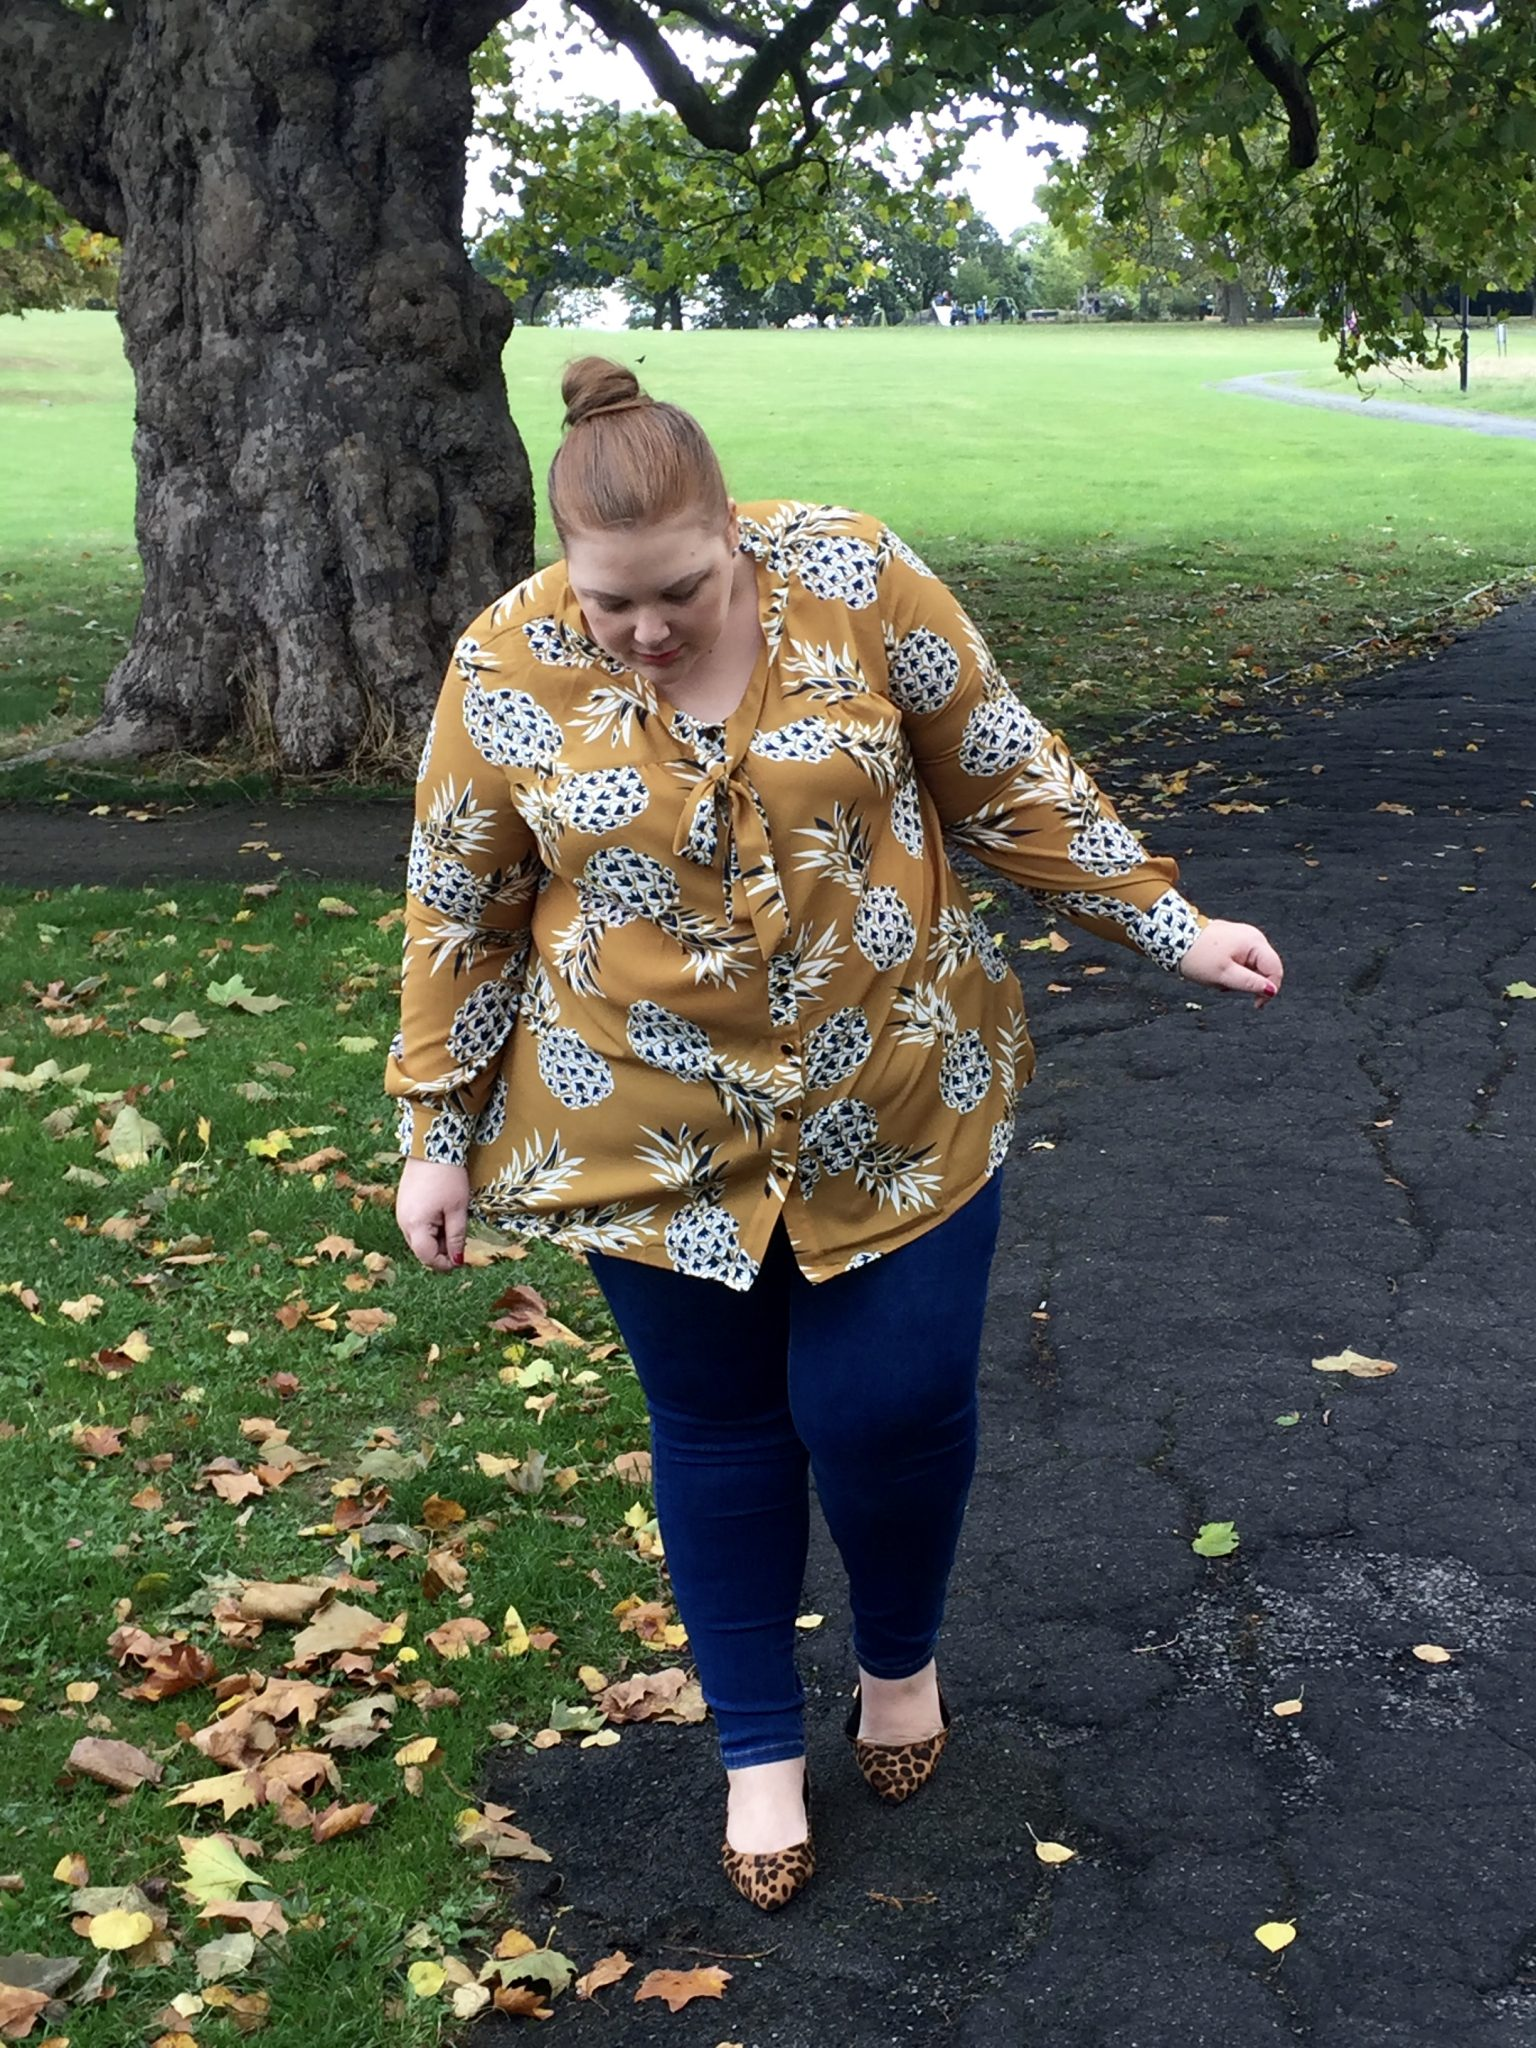 - Plus Size Blogger - Plus Size Pineapple Shirt - Pretty Big Butterflies